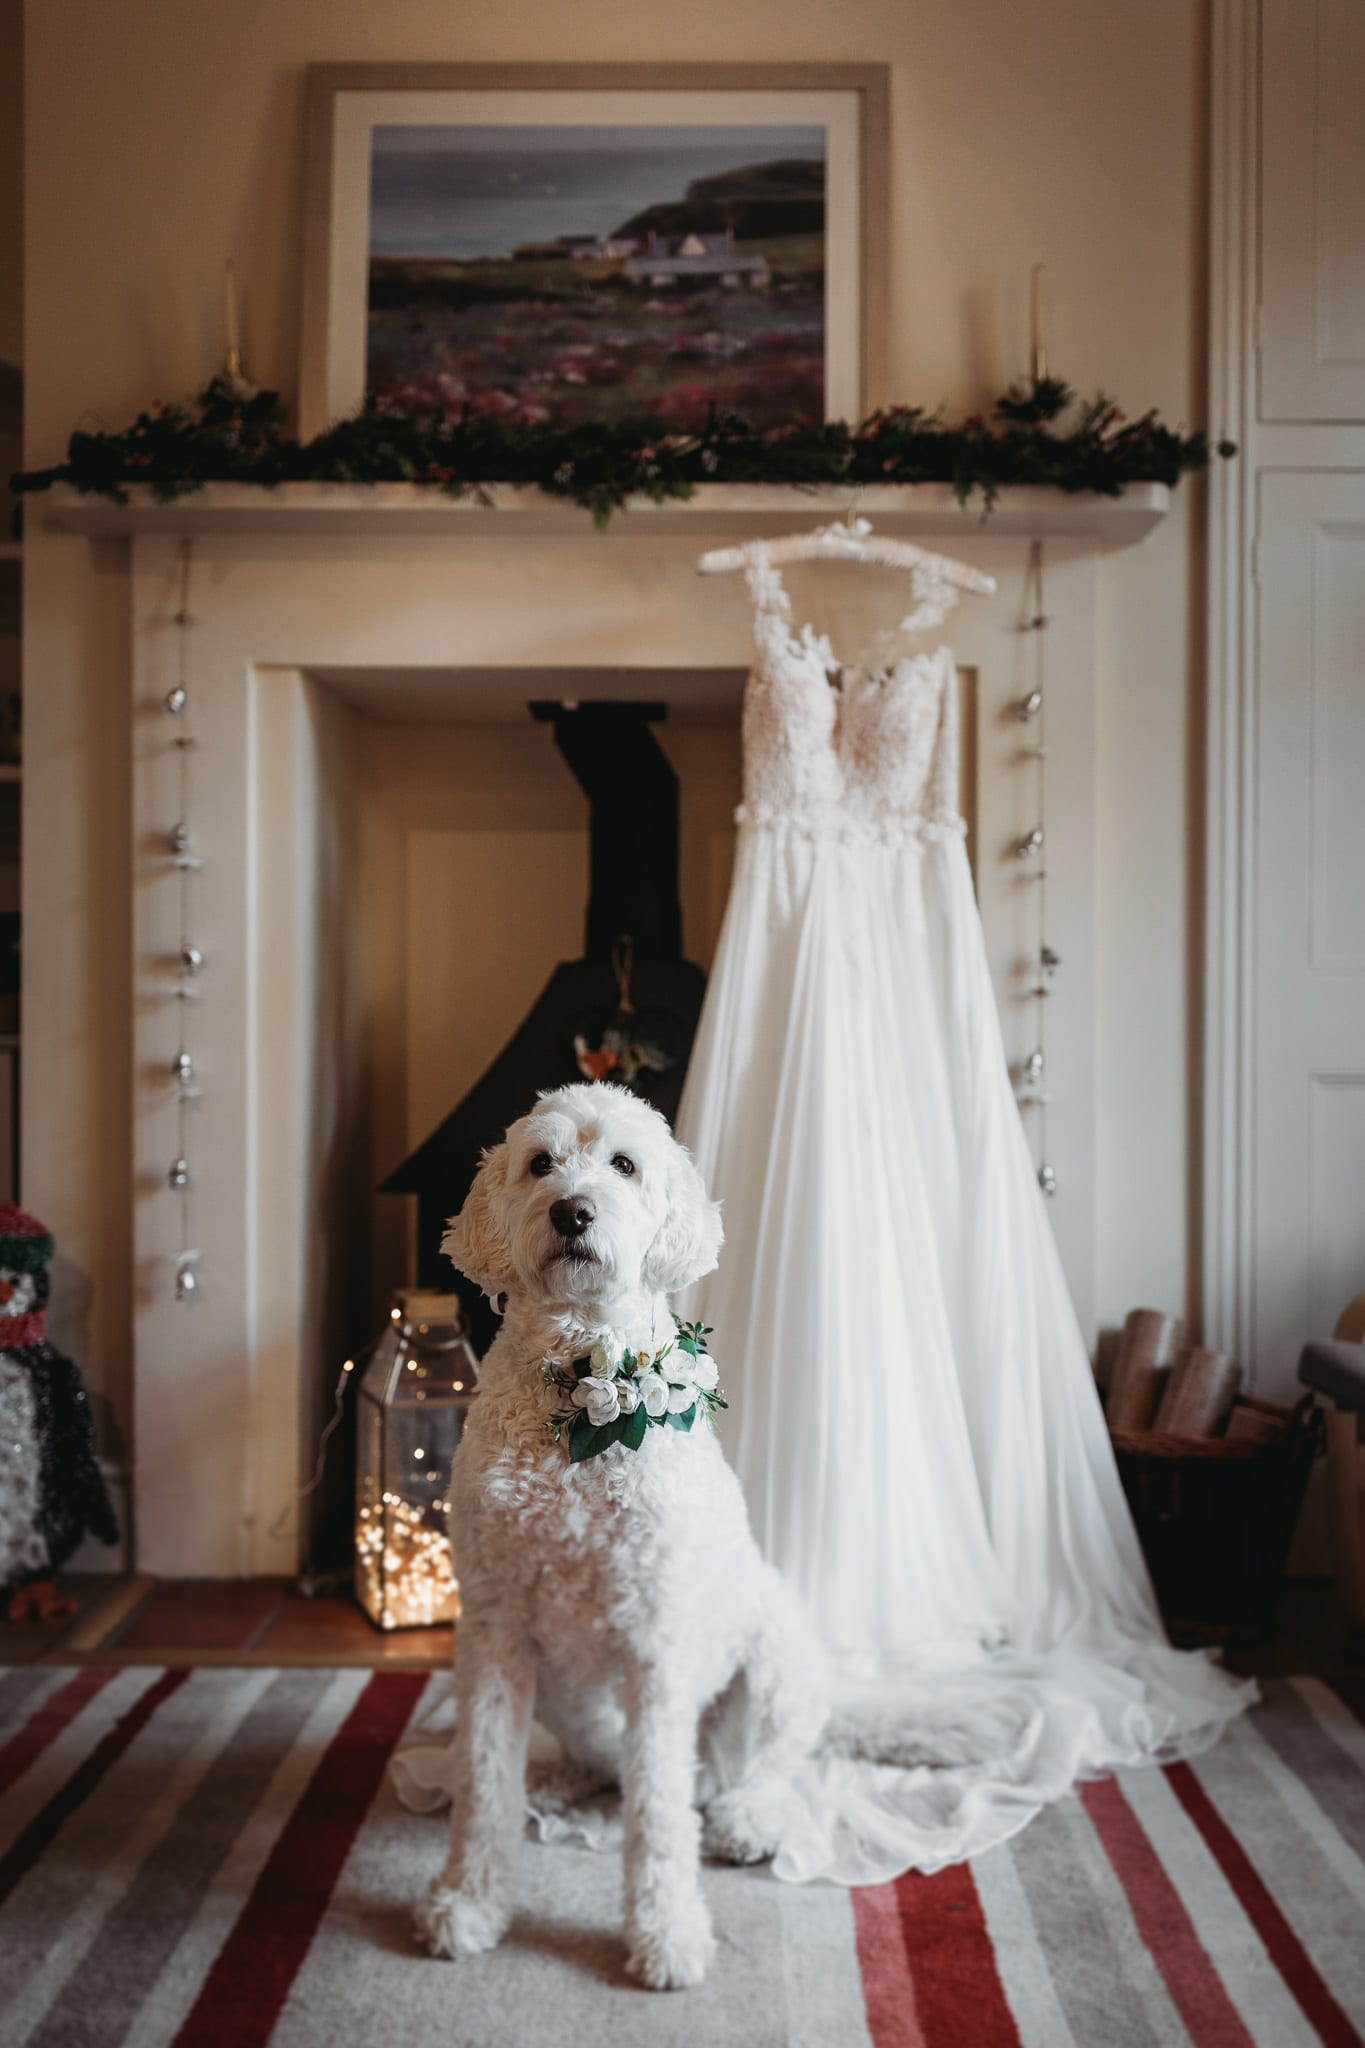 dog sitting in front of a fireplace next to a bridal dress